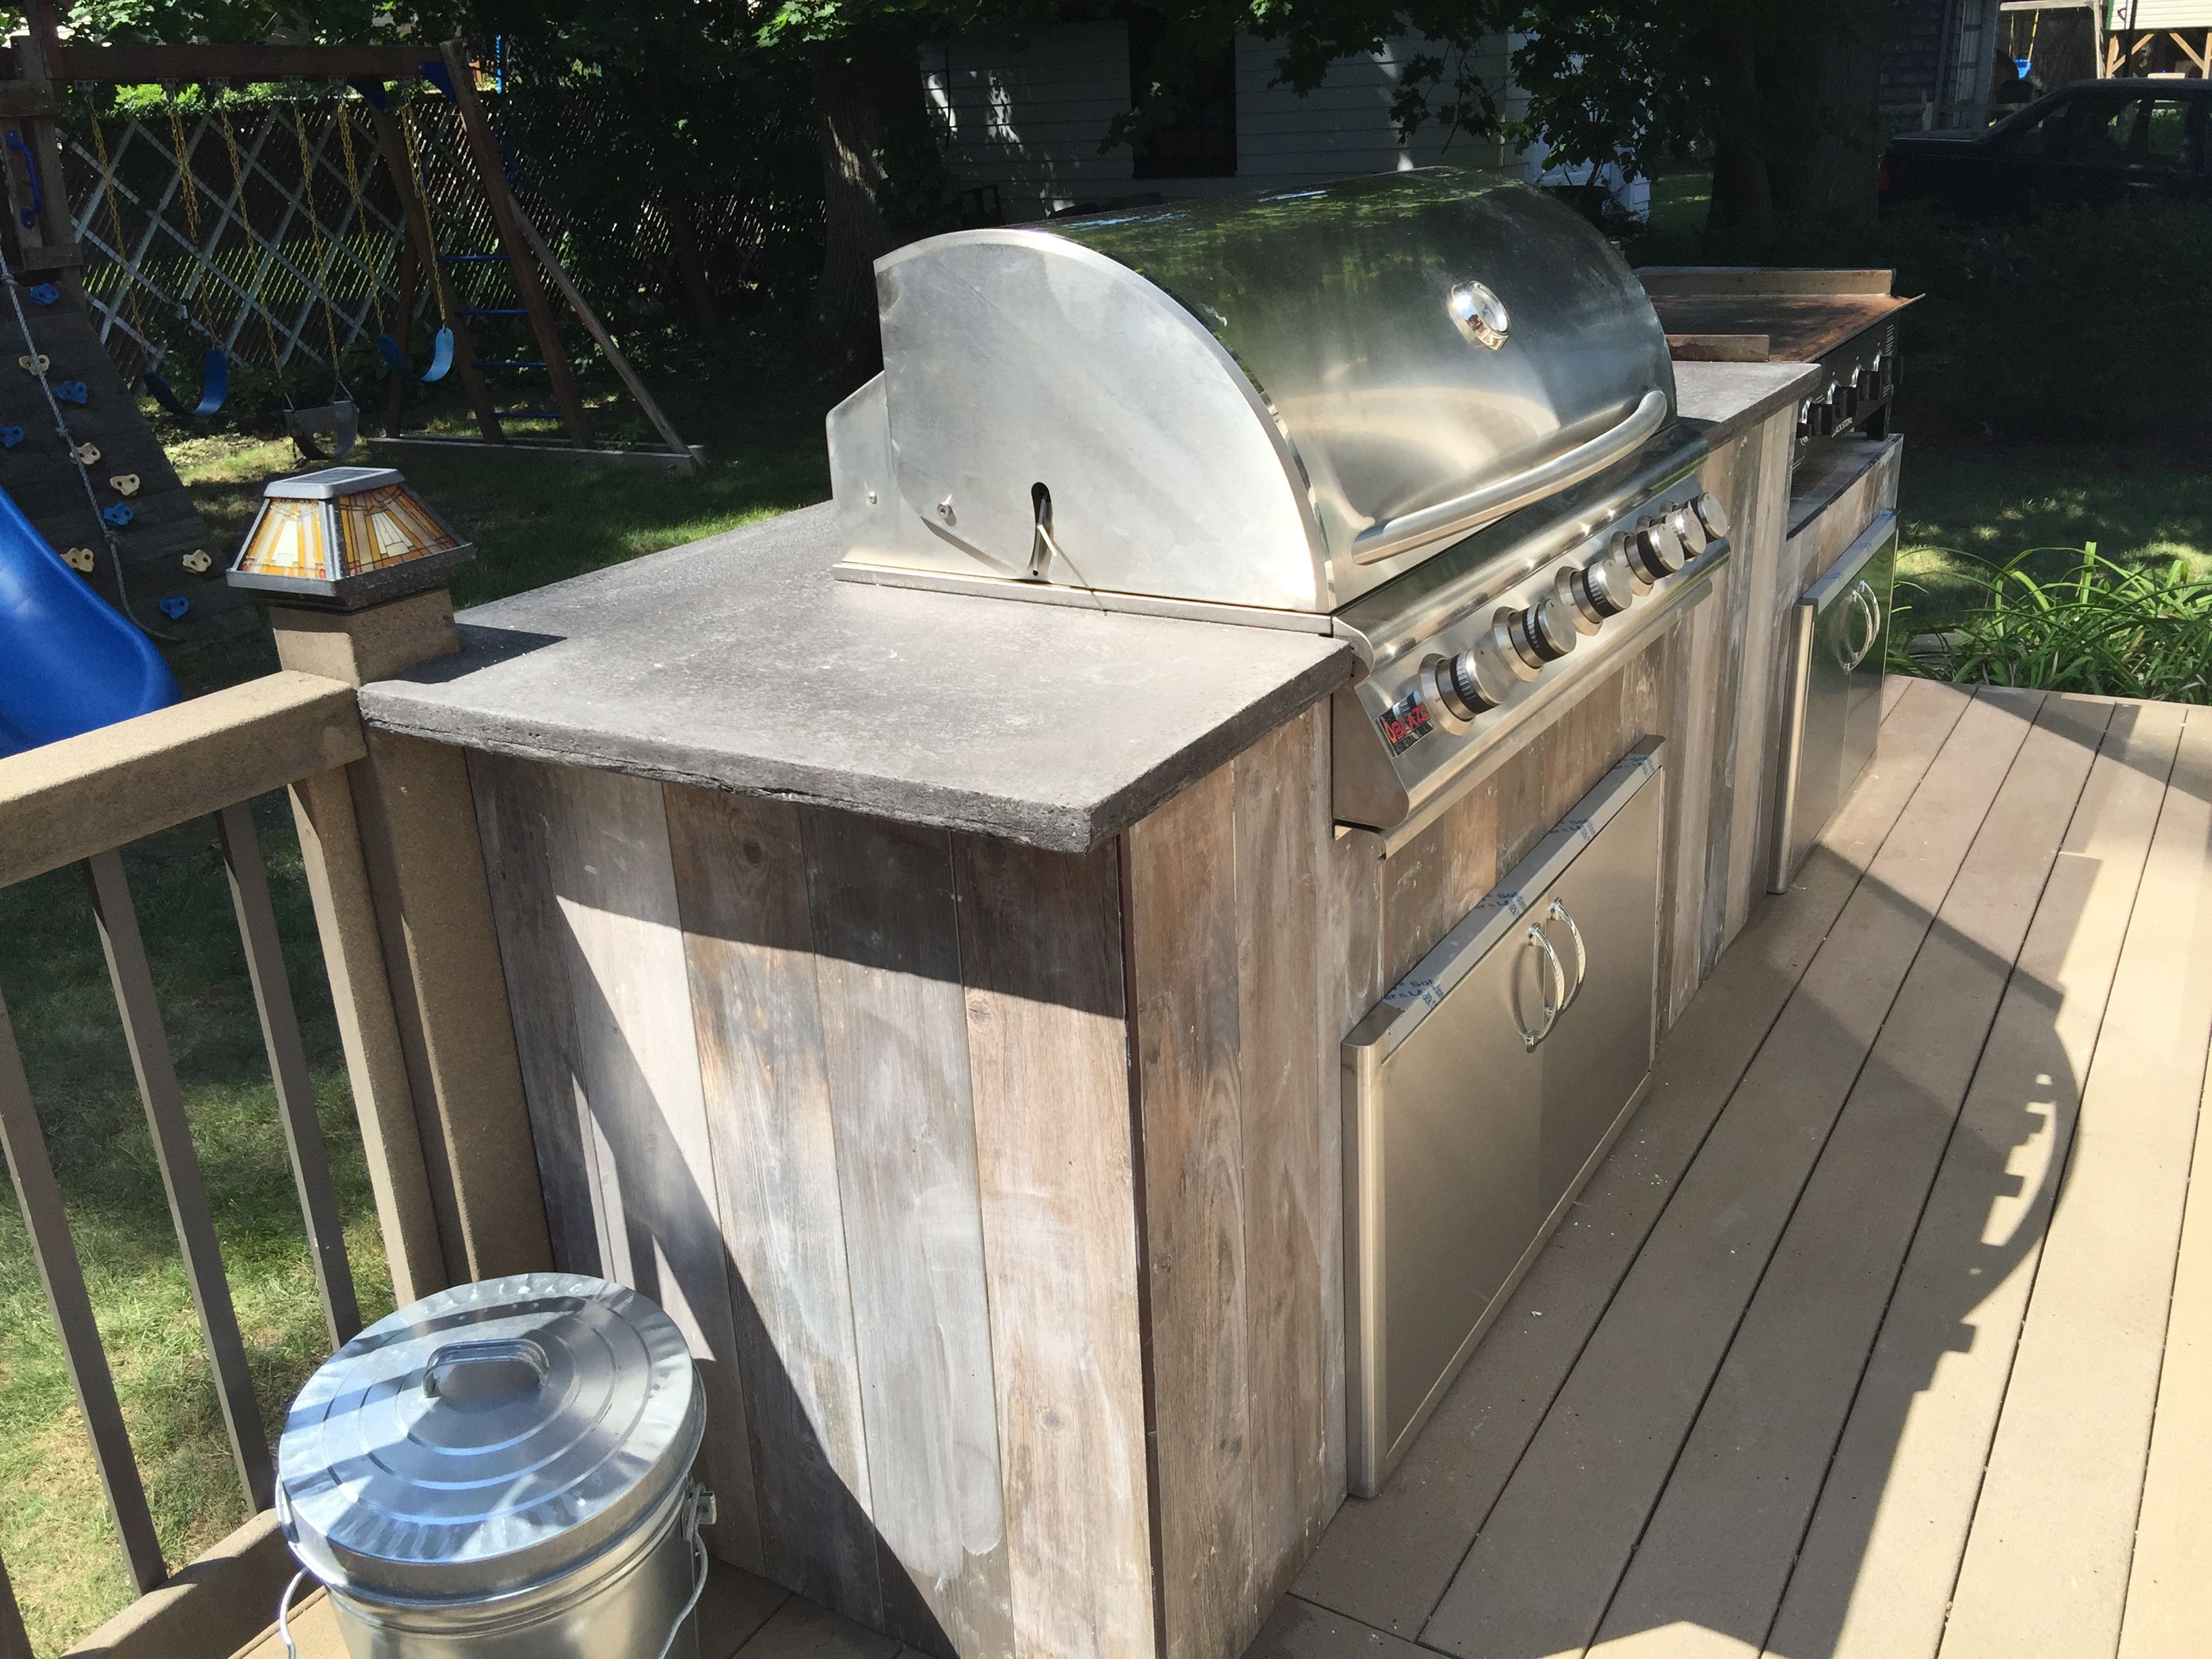 Outdoor Kitchen With Grill And Griddle Station With Concrete